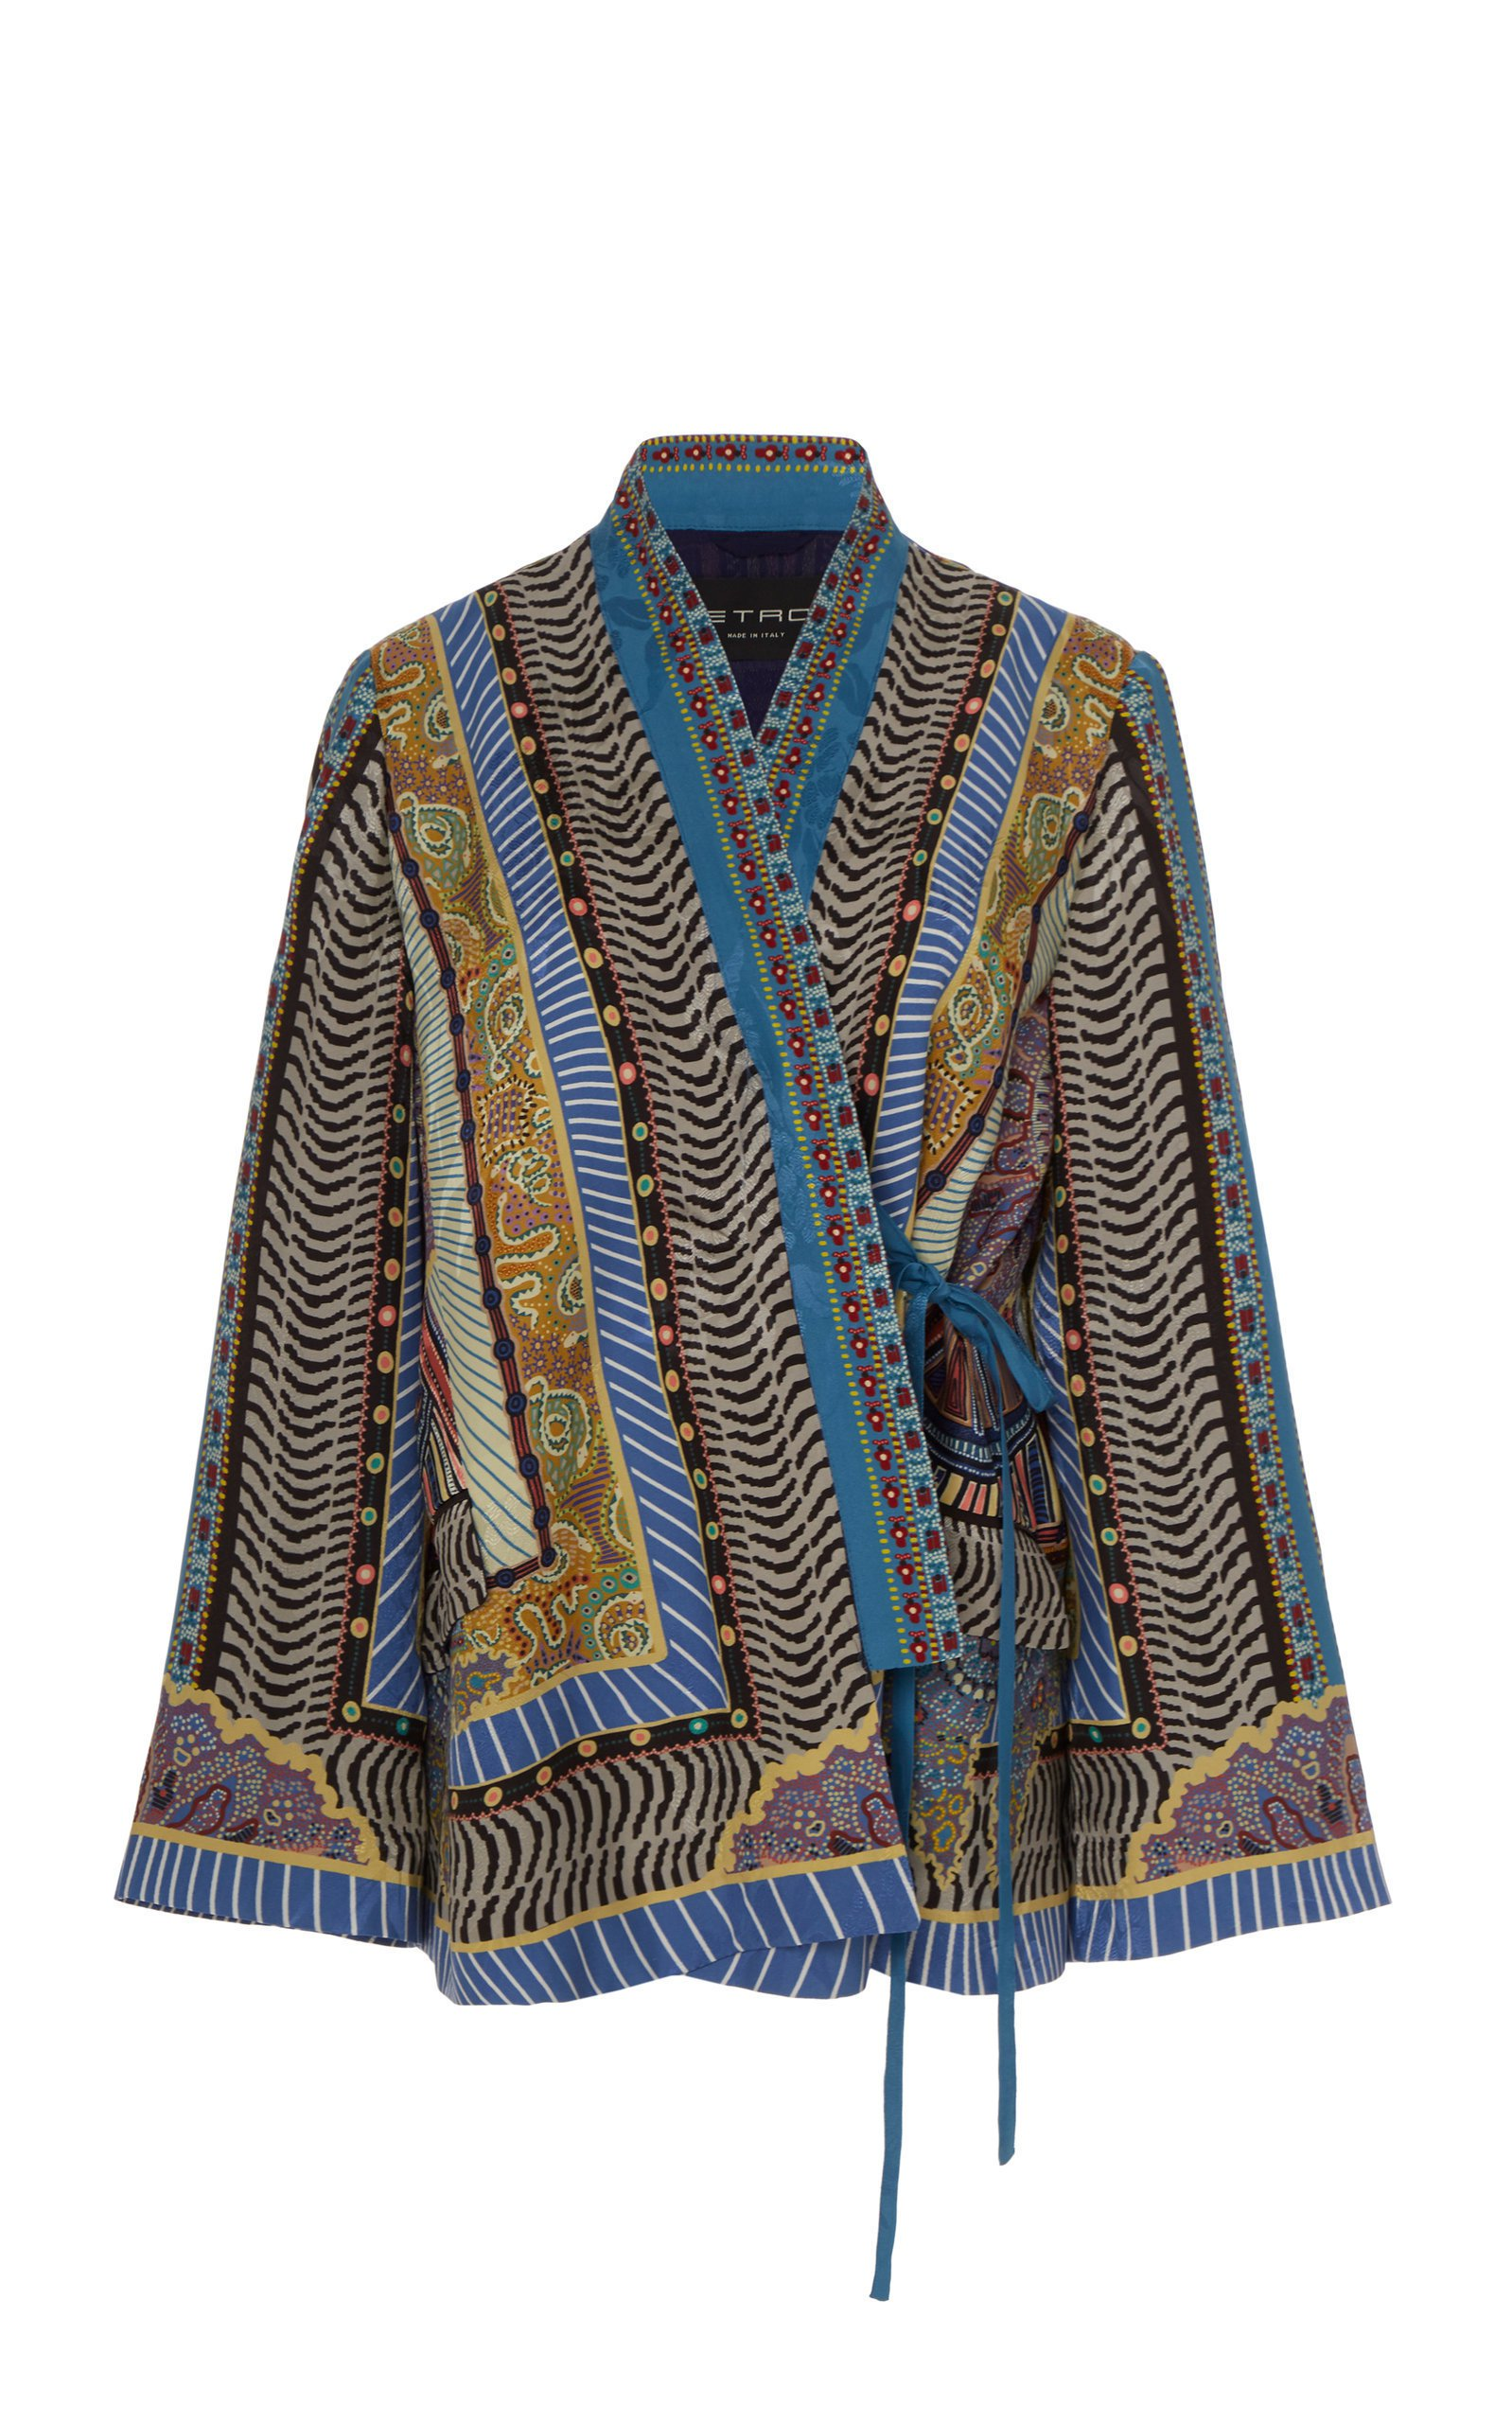 Etro Patterned Tie-Front Jacket